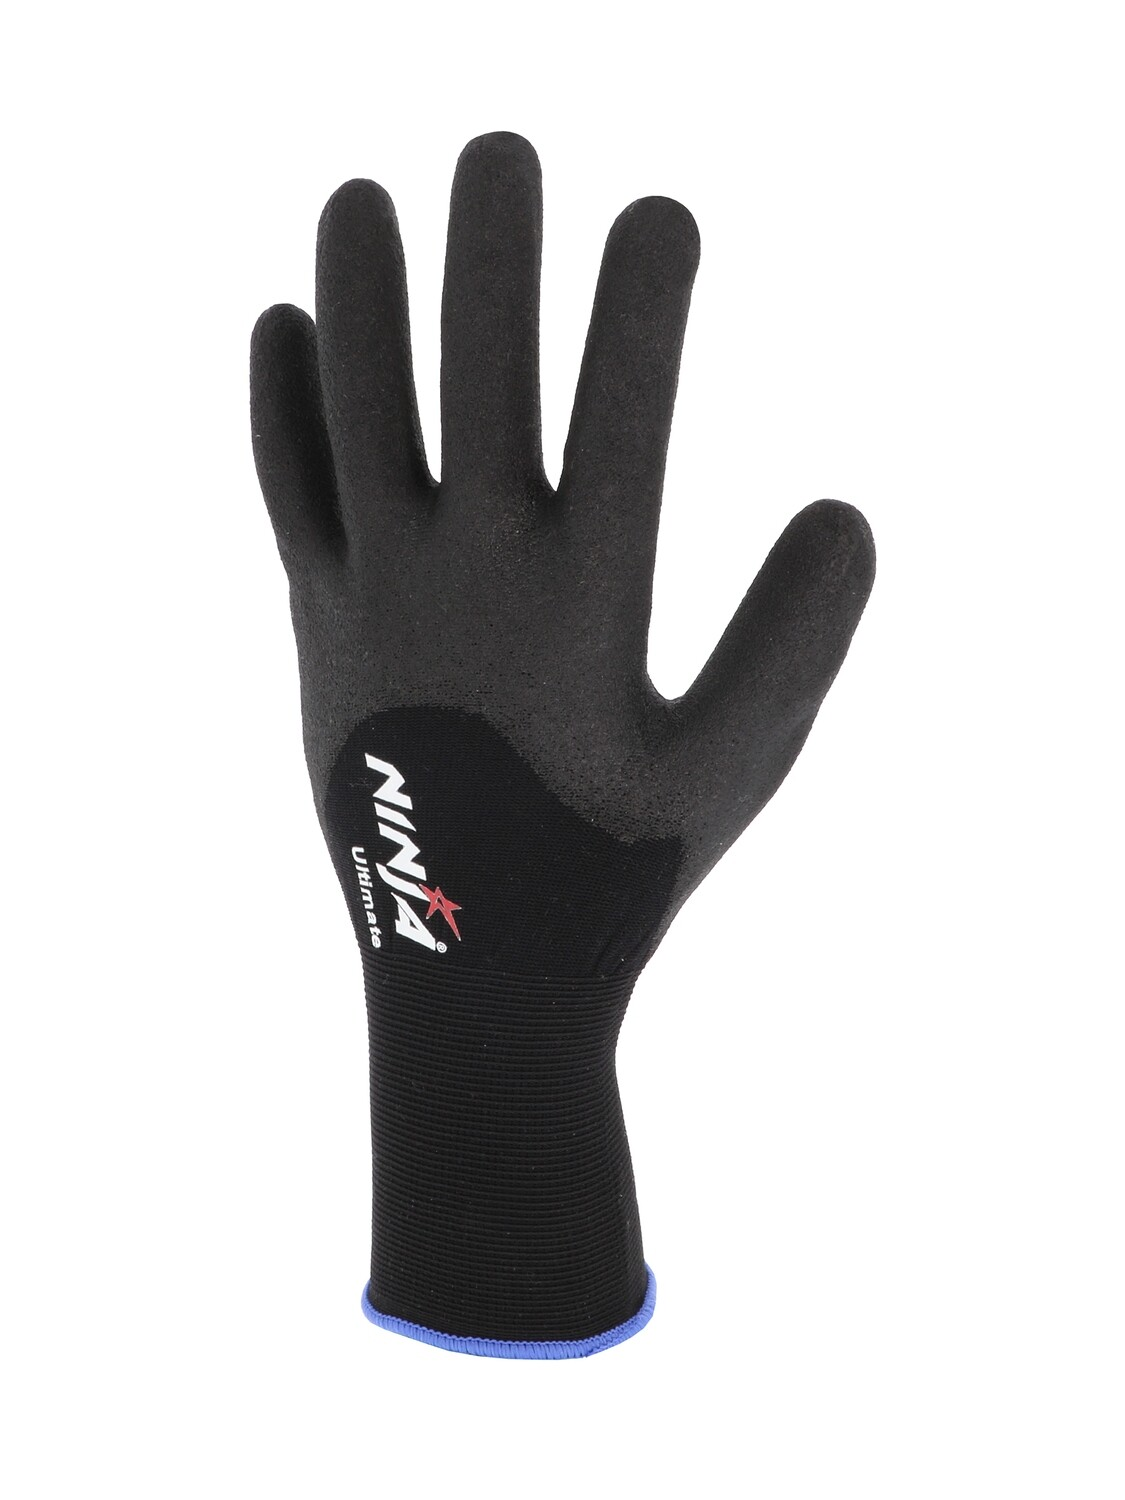 NINJA ULTIMATE. Enduction HPT. Dos aere. Jauge 15. (10 paires)